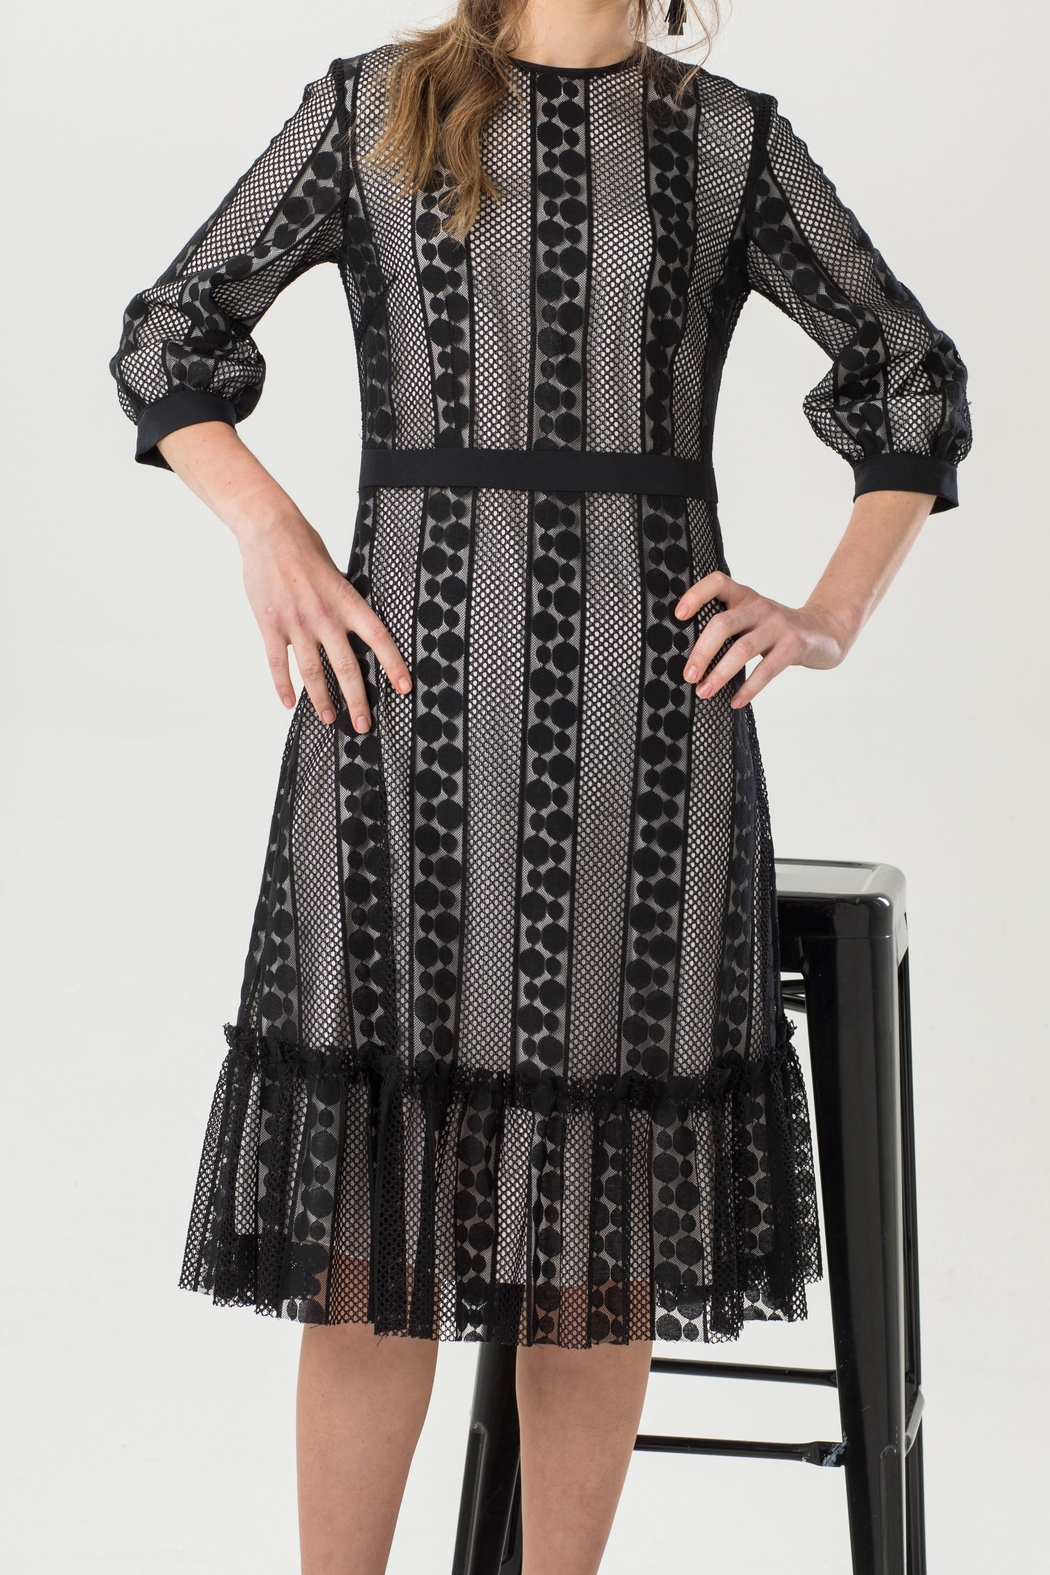 Luxe Label Black & White 3/4 Sleeve Lace Flare Knee Length Dress - Front Full Image